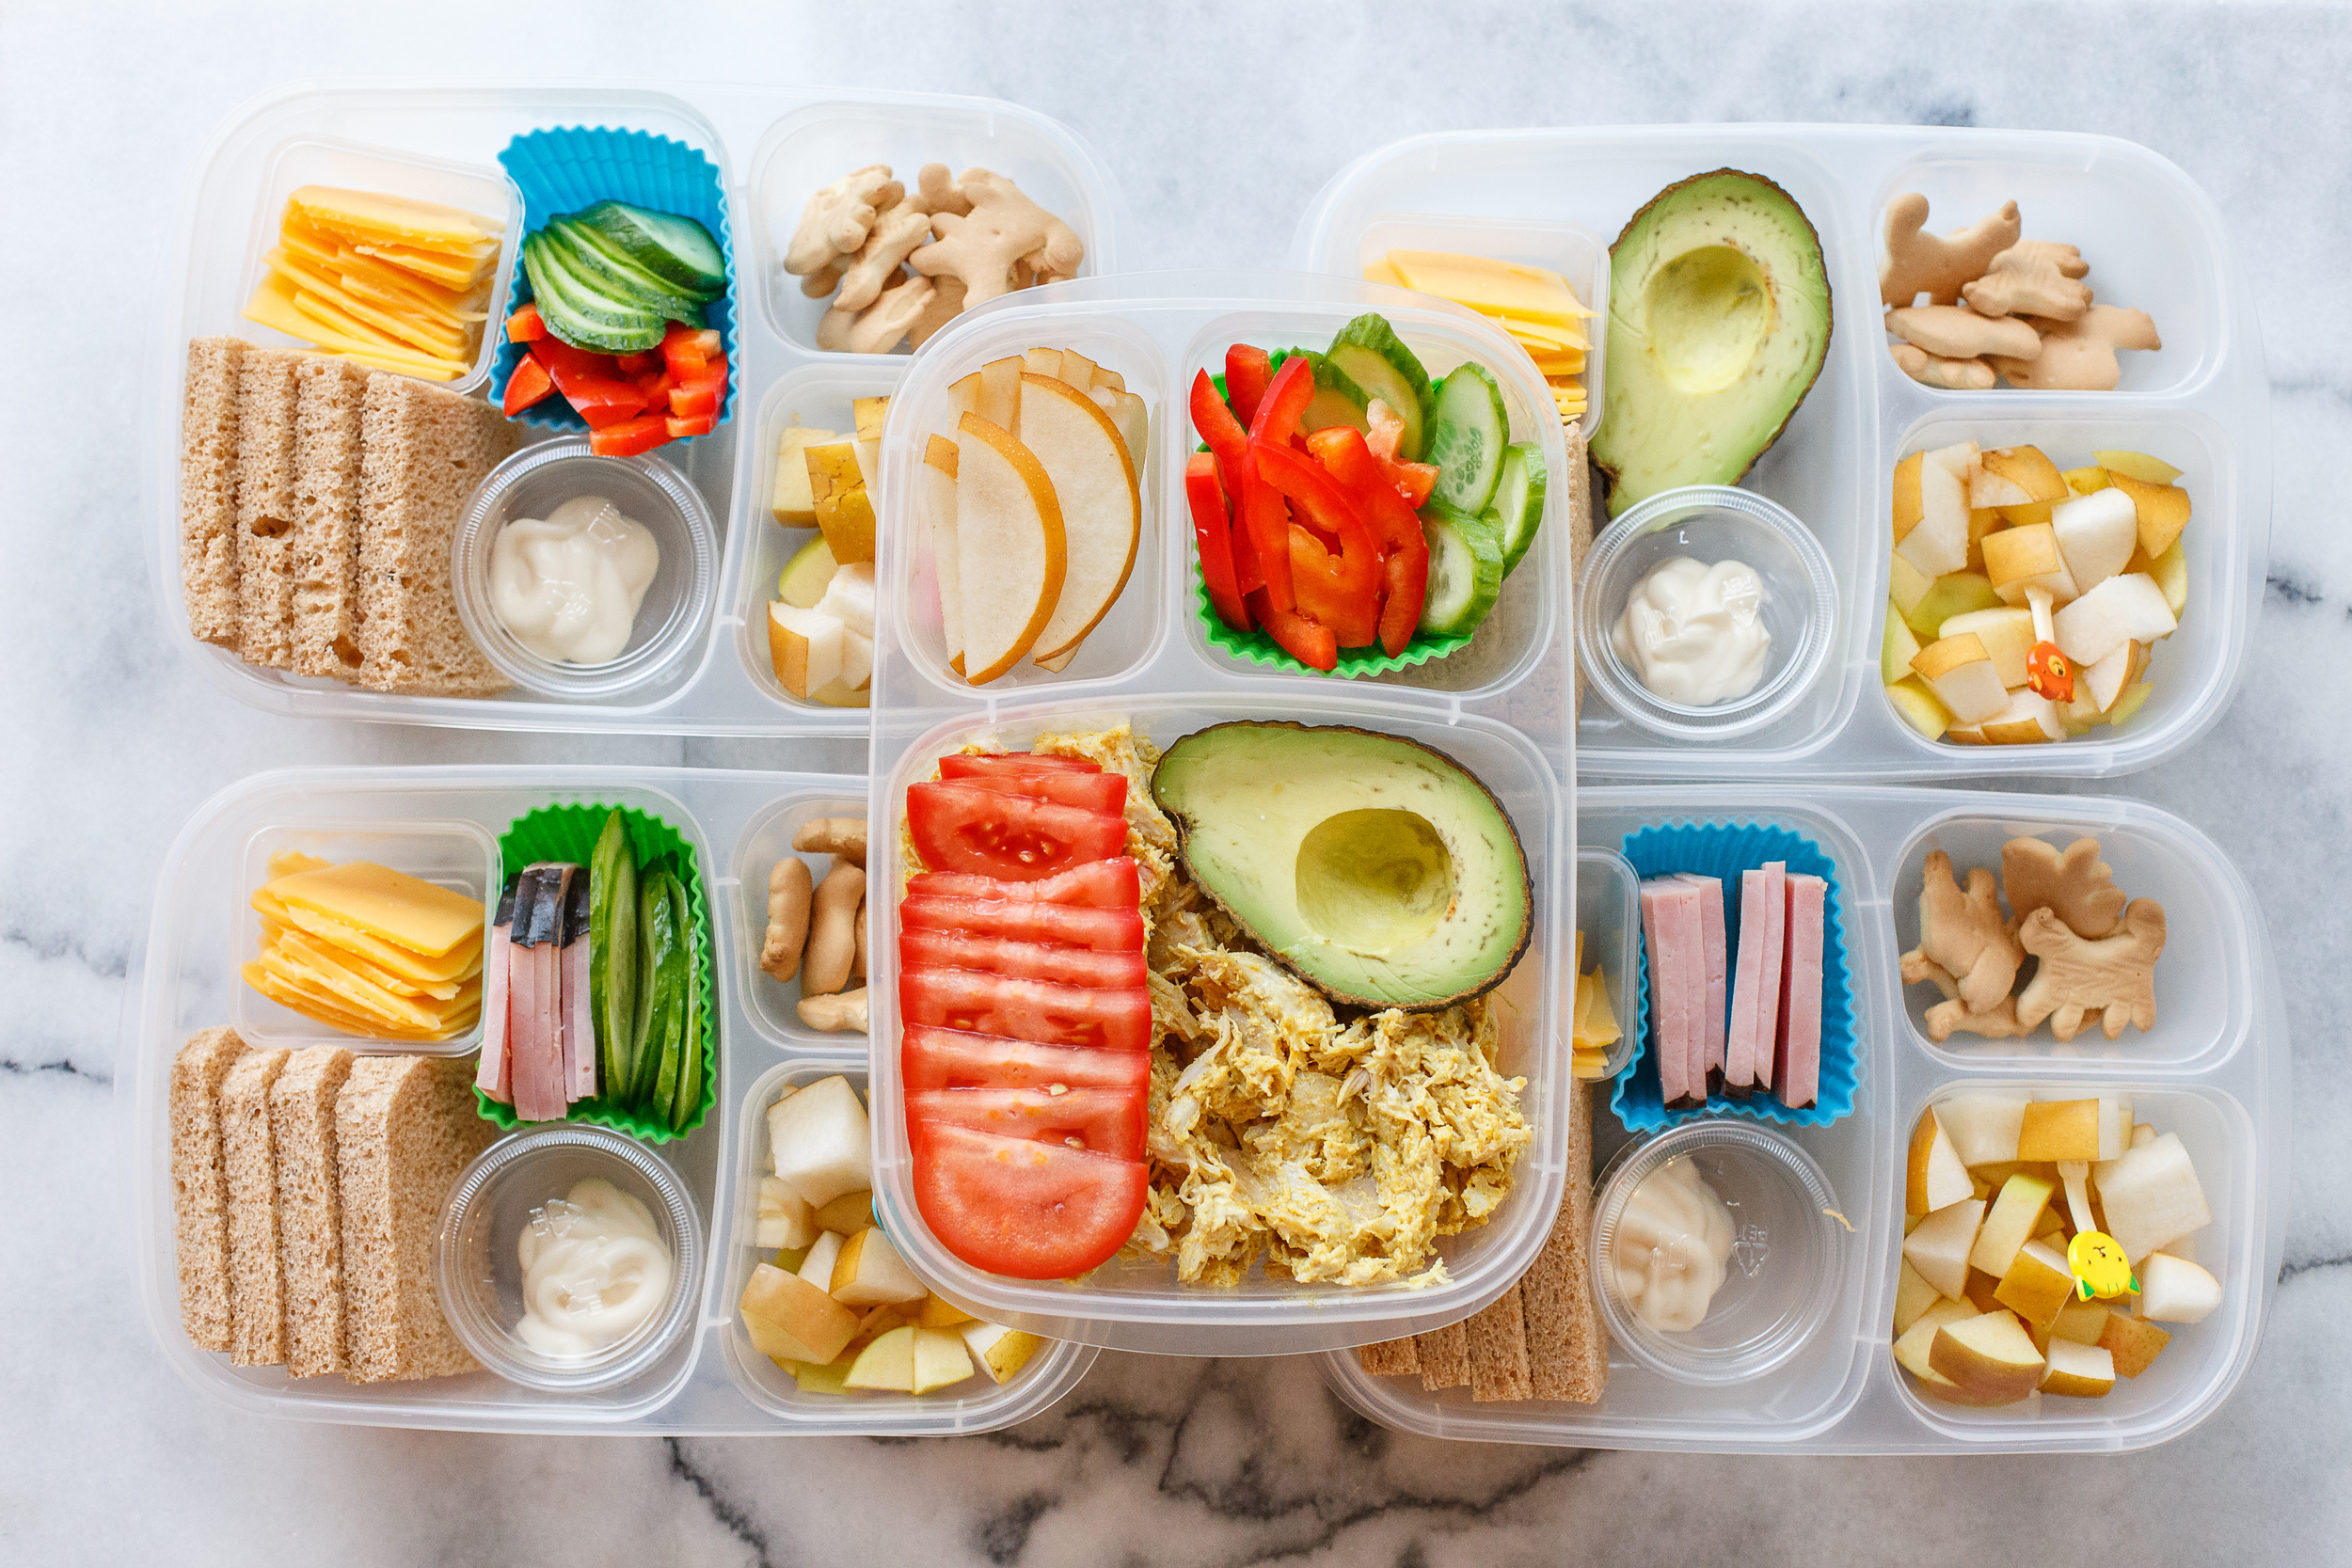 Five lunches today! It's pre-k pumpkin patch field trip day, so I packed lunch for me too. The kids loved making their own sandwiches so much last week that I did it again today. They have bread, cheese and mayo. Two have ham, two have cucumbers, one has peppers. They all have bites of apples and pears, and a few organic animal cookies. My lunch is curry chicken salad, avocado, tomatoes, peppers, and some sliced pear.